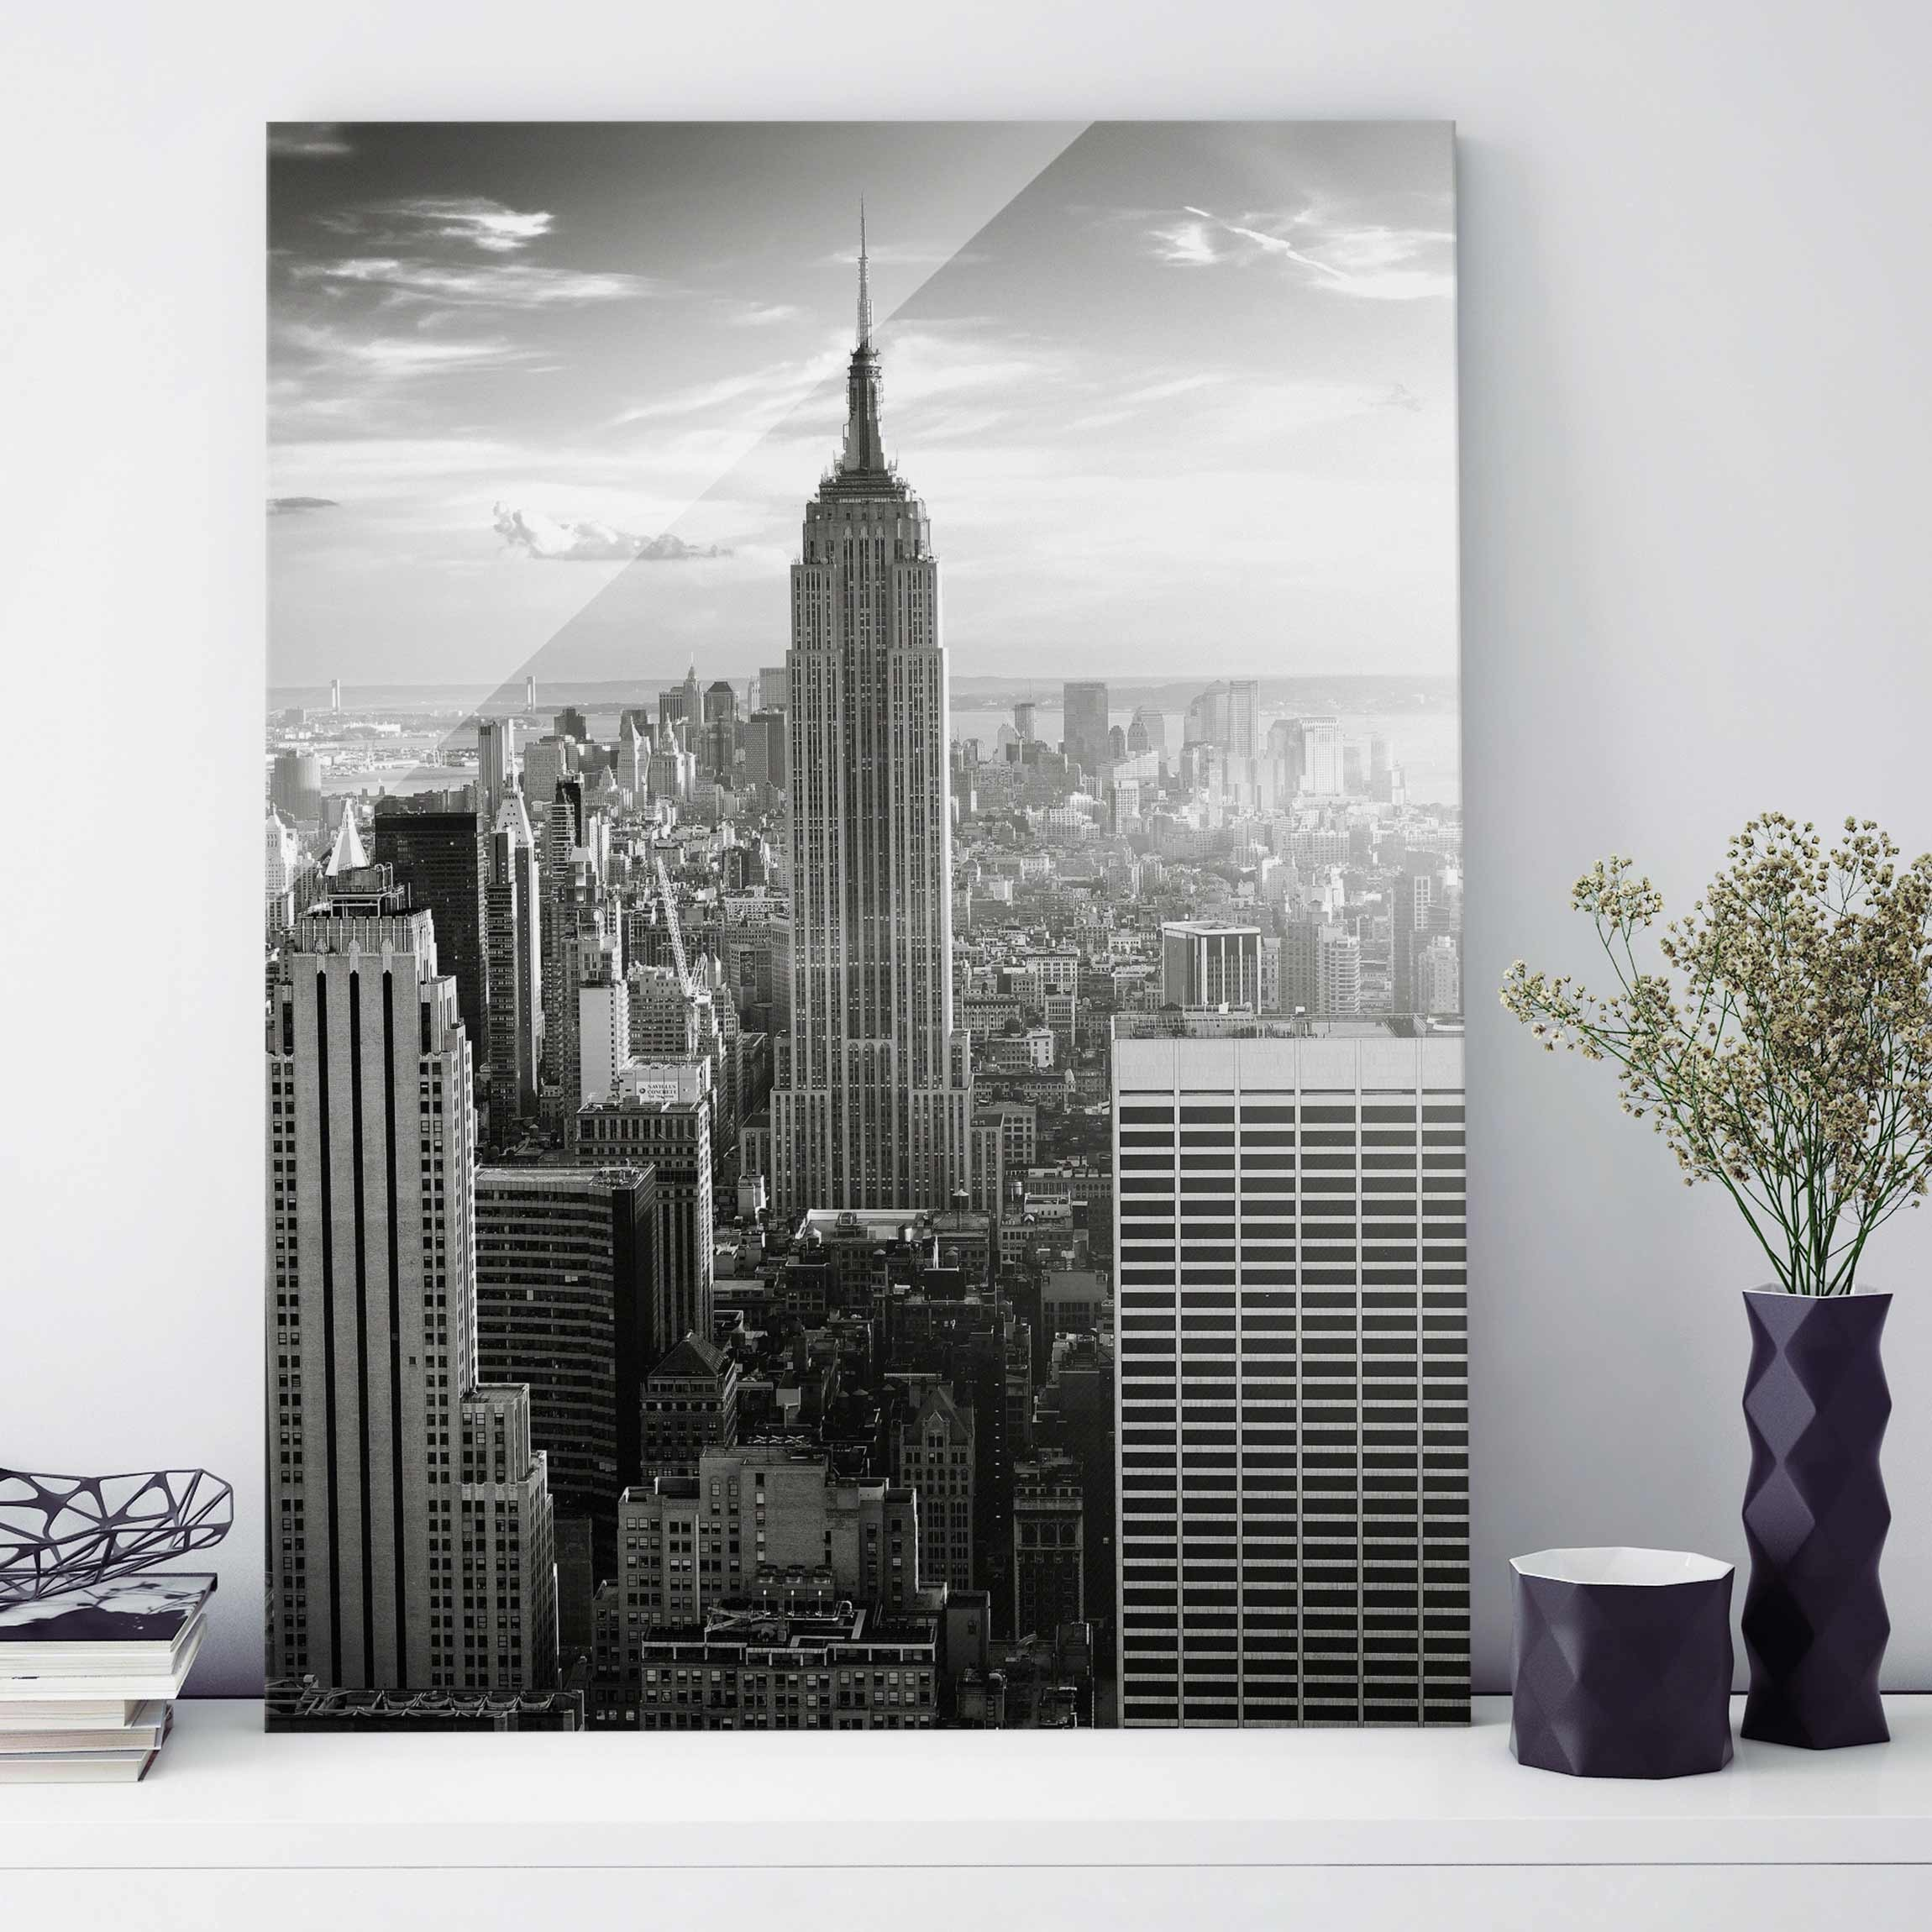 glasbild new york manhattan skyline hoch 4 3. Black Bedroom Furniture Sets. Home Design Ideas